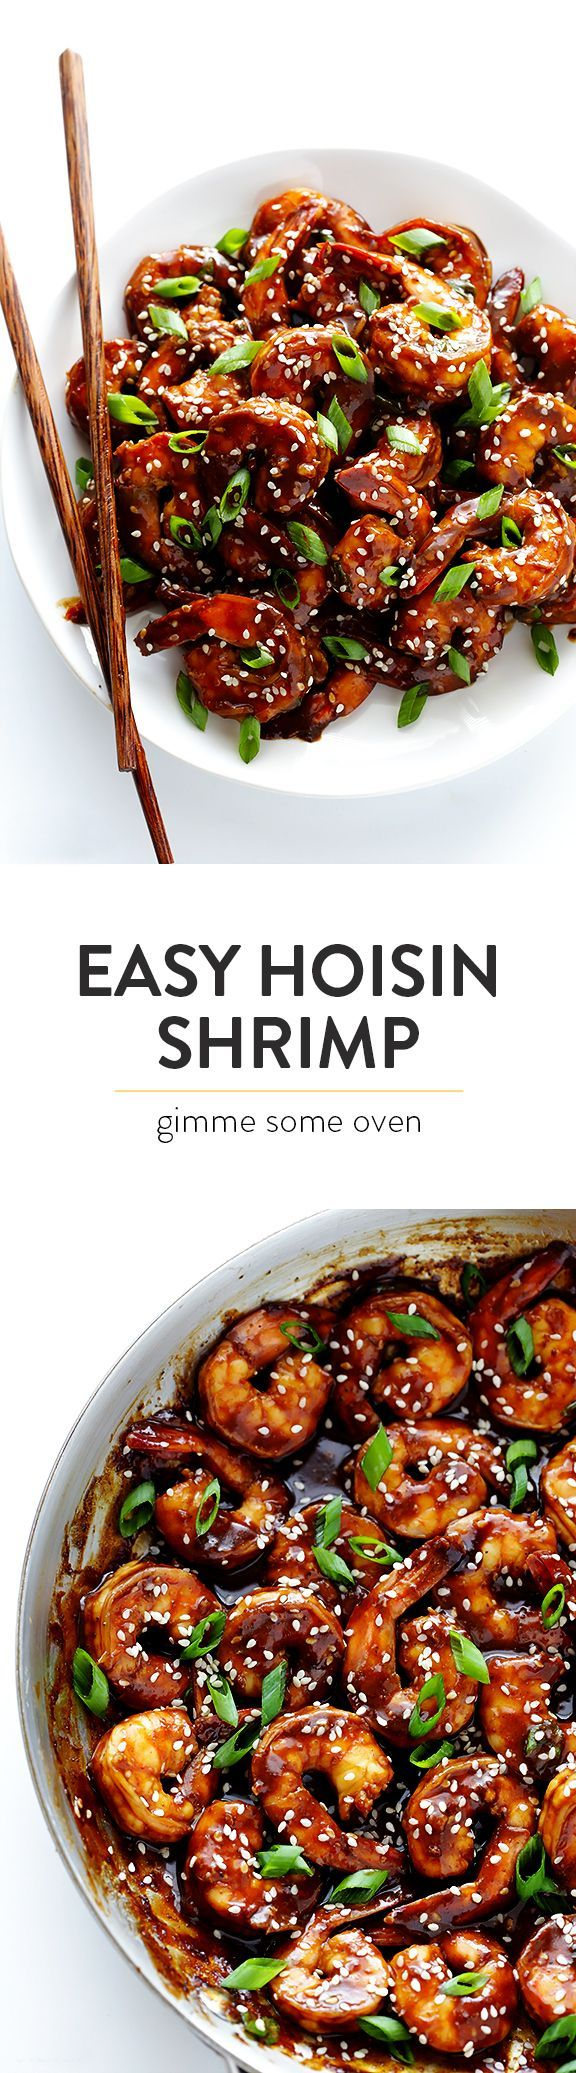 Easy Hoisin Shrimp -- made with a simple 3-ingredient sauce, and ready to go in 15 minutes!